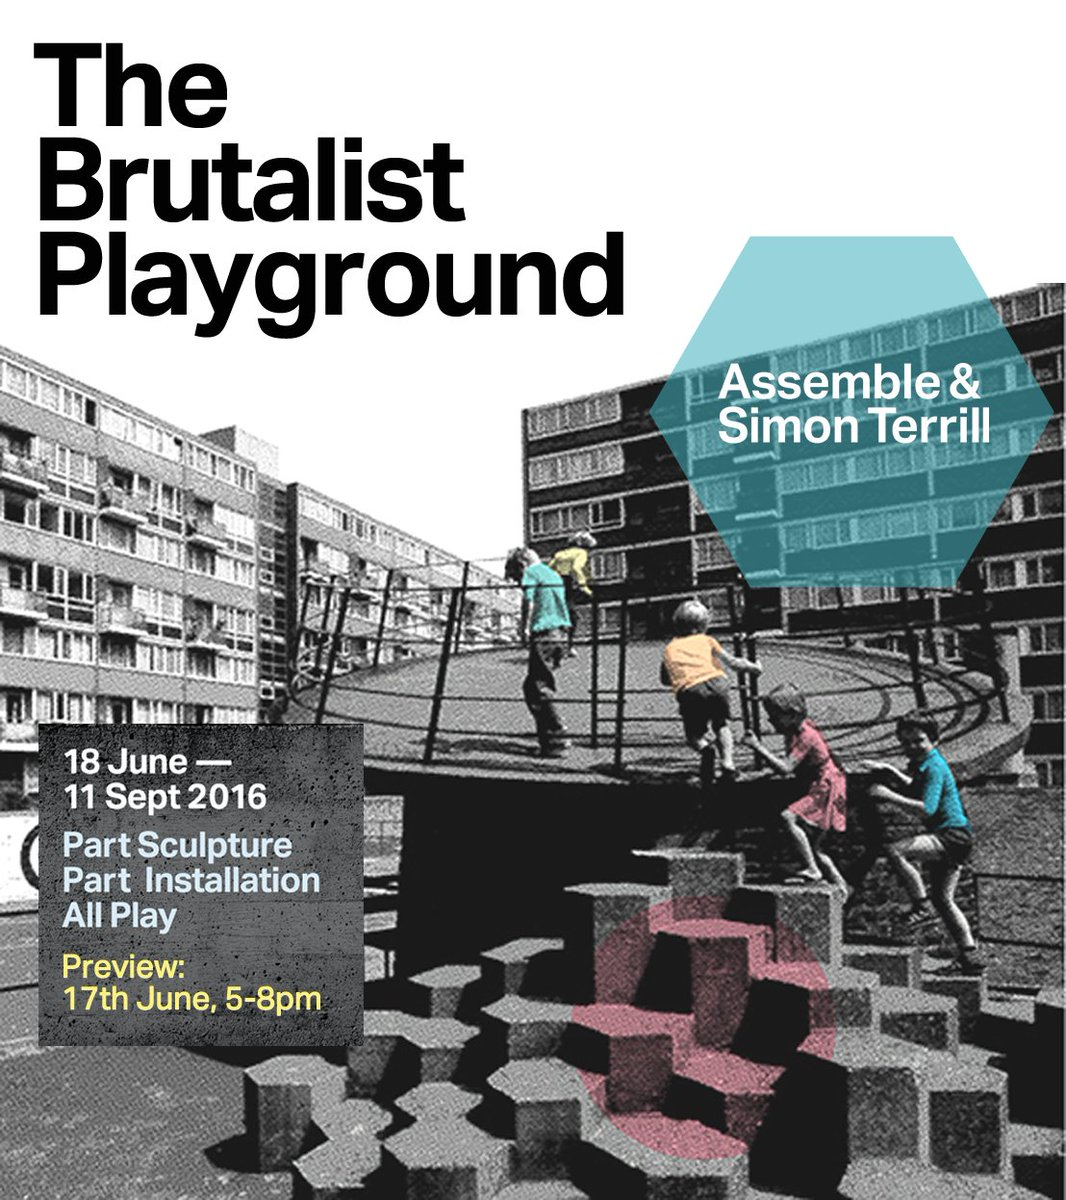 #BrutalistPlayground by Assemble & Simon Terrill opens @S1Artspace at Park Hill Sat 18 June. Part of @YorkshireFest https://t.co/m1ZrNuCKj3